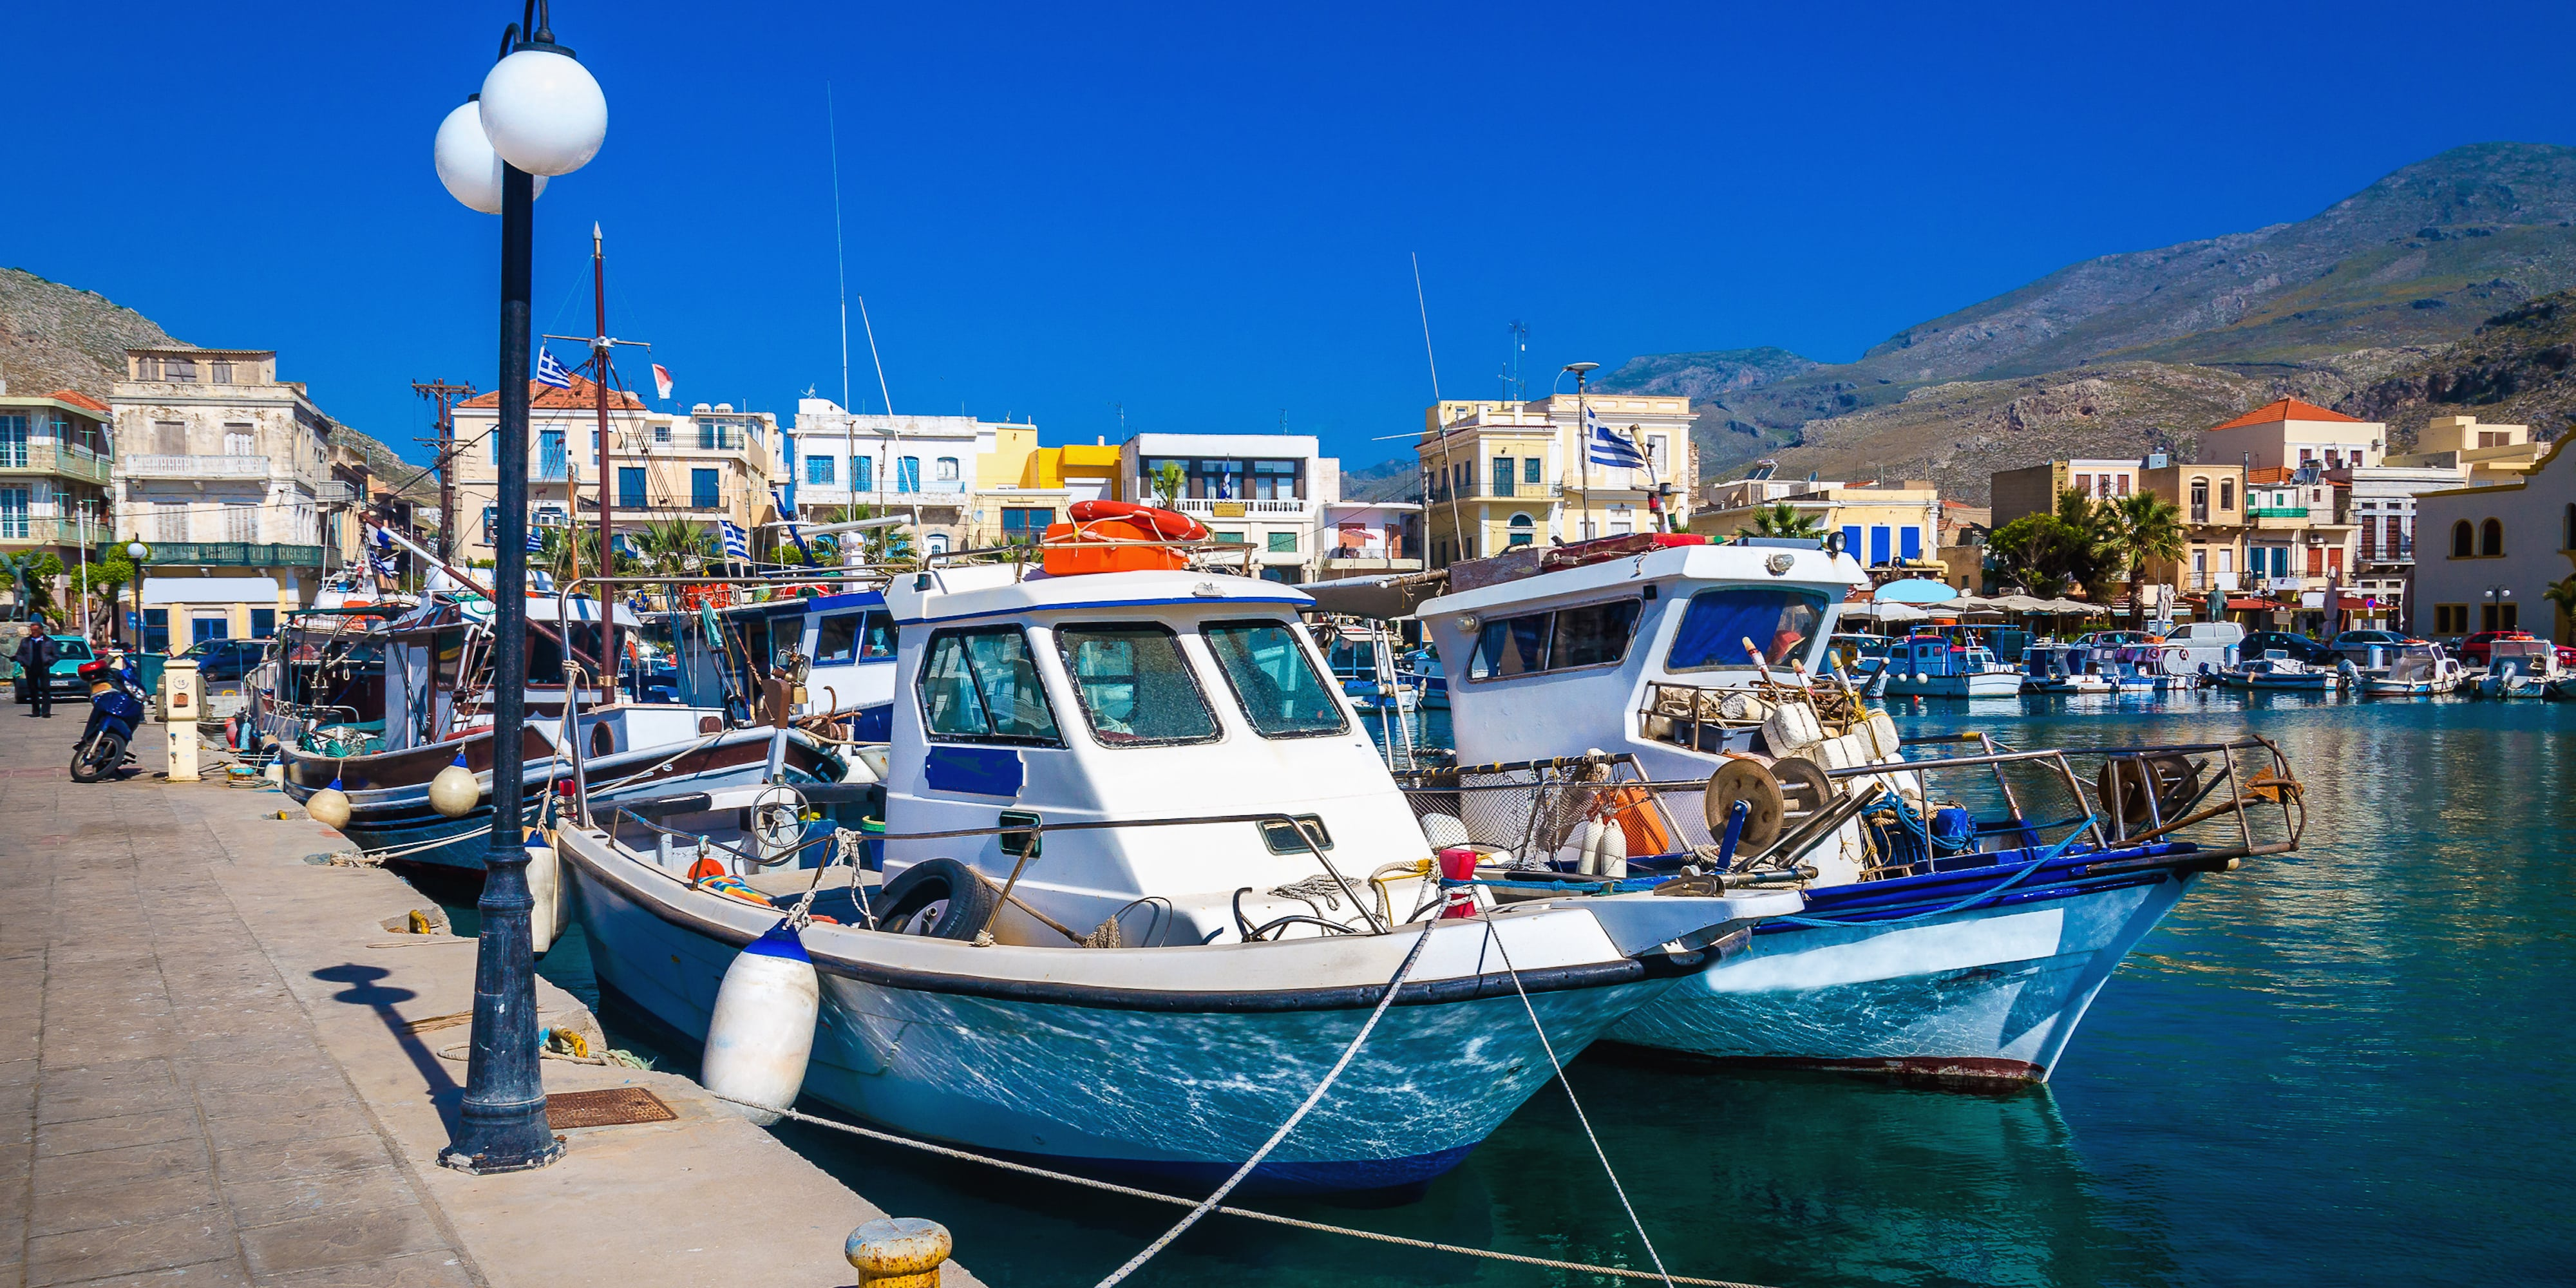 Wharf with citylights and cosy traditional Greek boats in small port of Pothia, Kalymnos, Greece